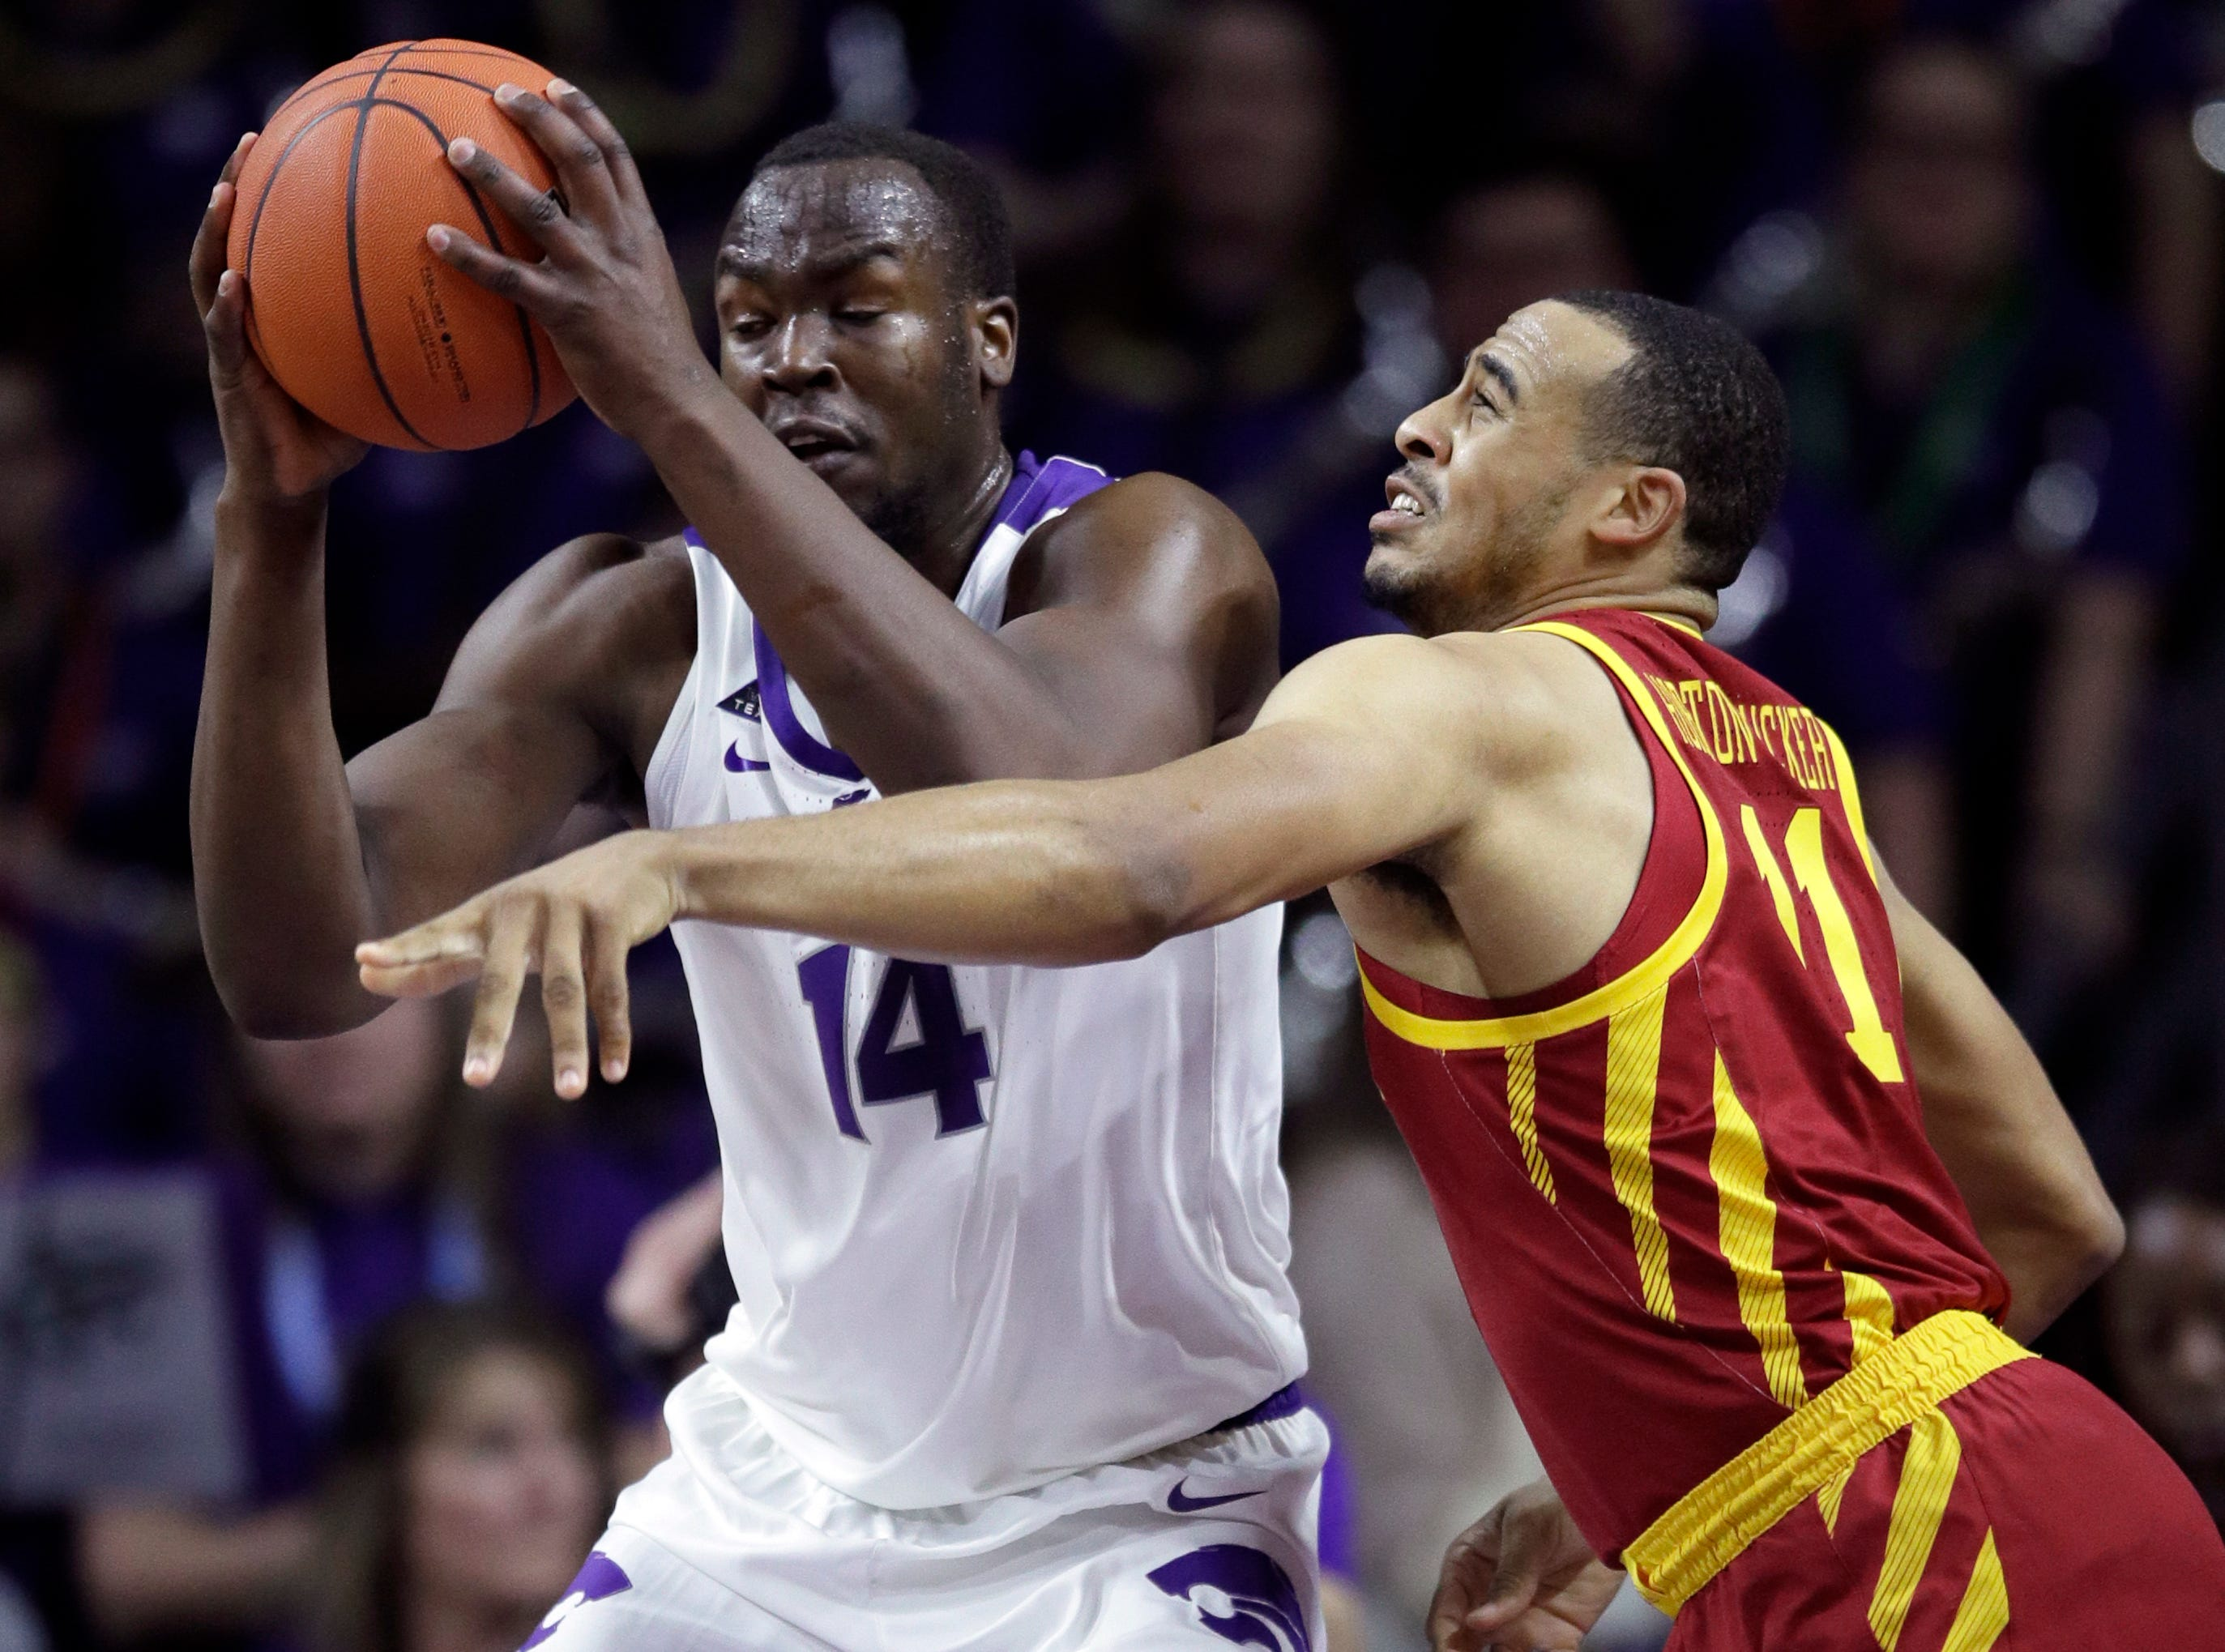 Iowa State guard Talen Horton-Tucker (11) covers Kansas State forward Makol Mawien (14) during the first half of an NCAA college basketball game in Manhattan, Kan., Saturday, Feb. 16, 2019.